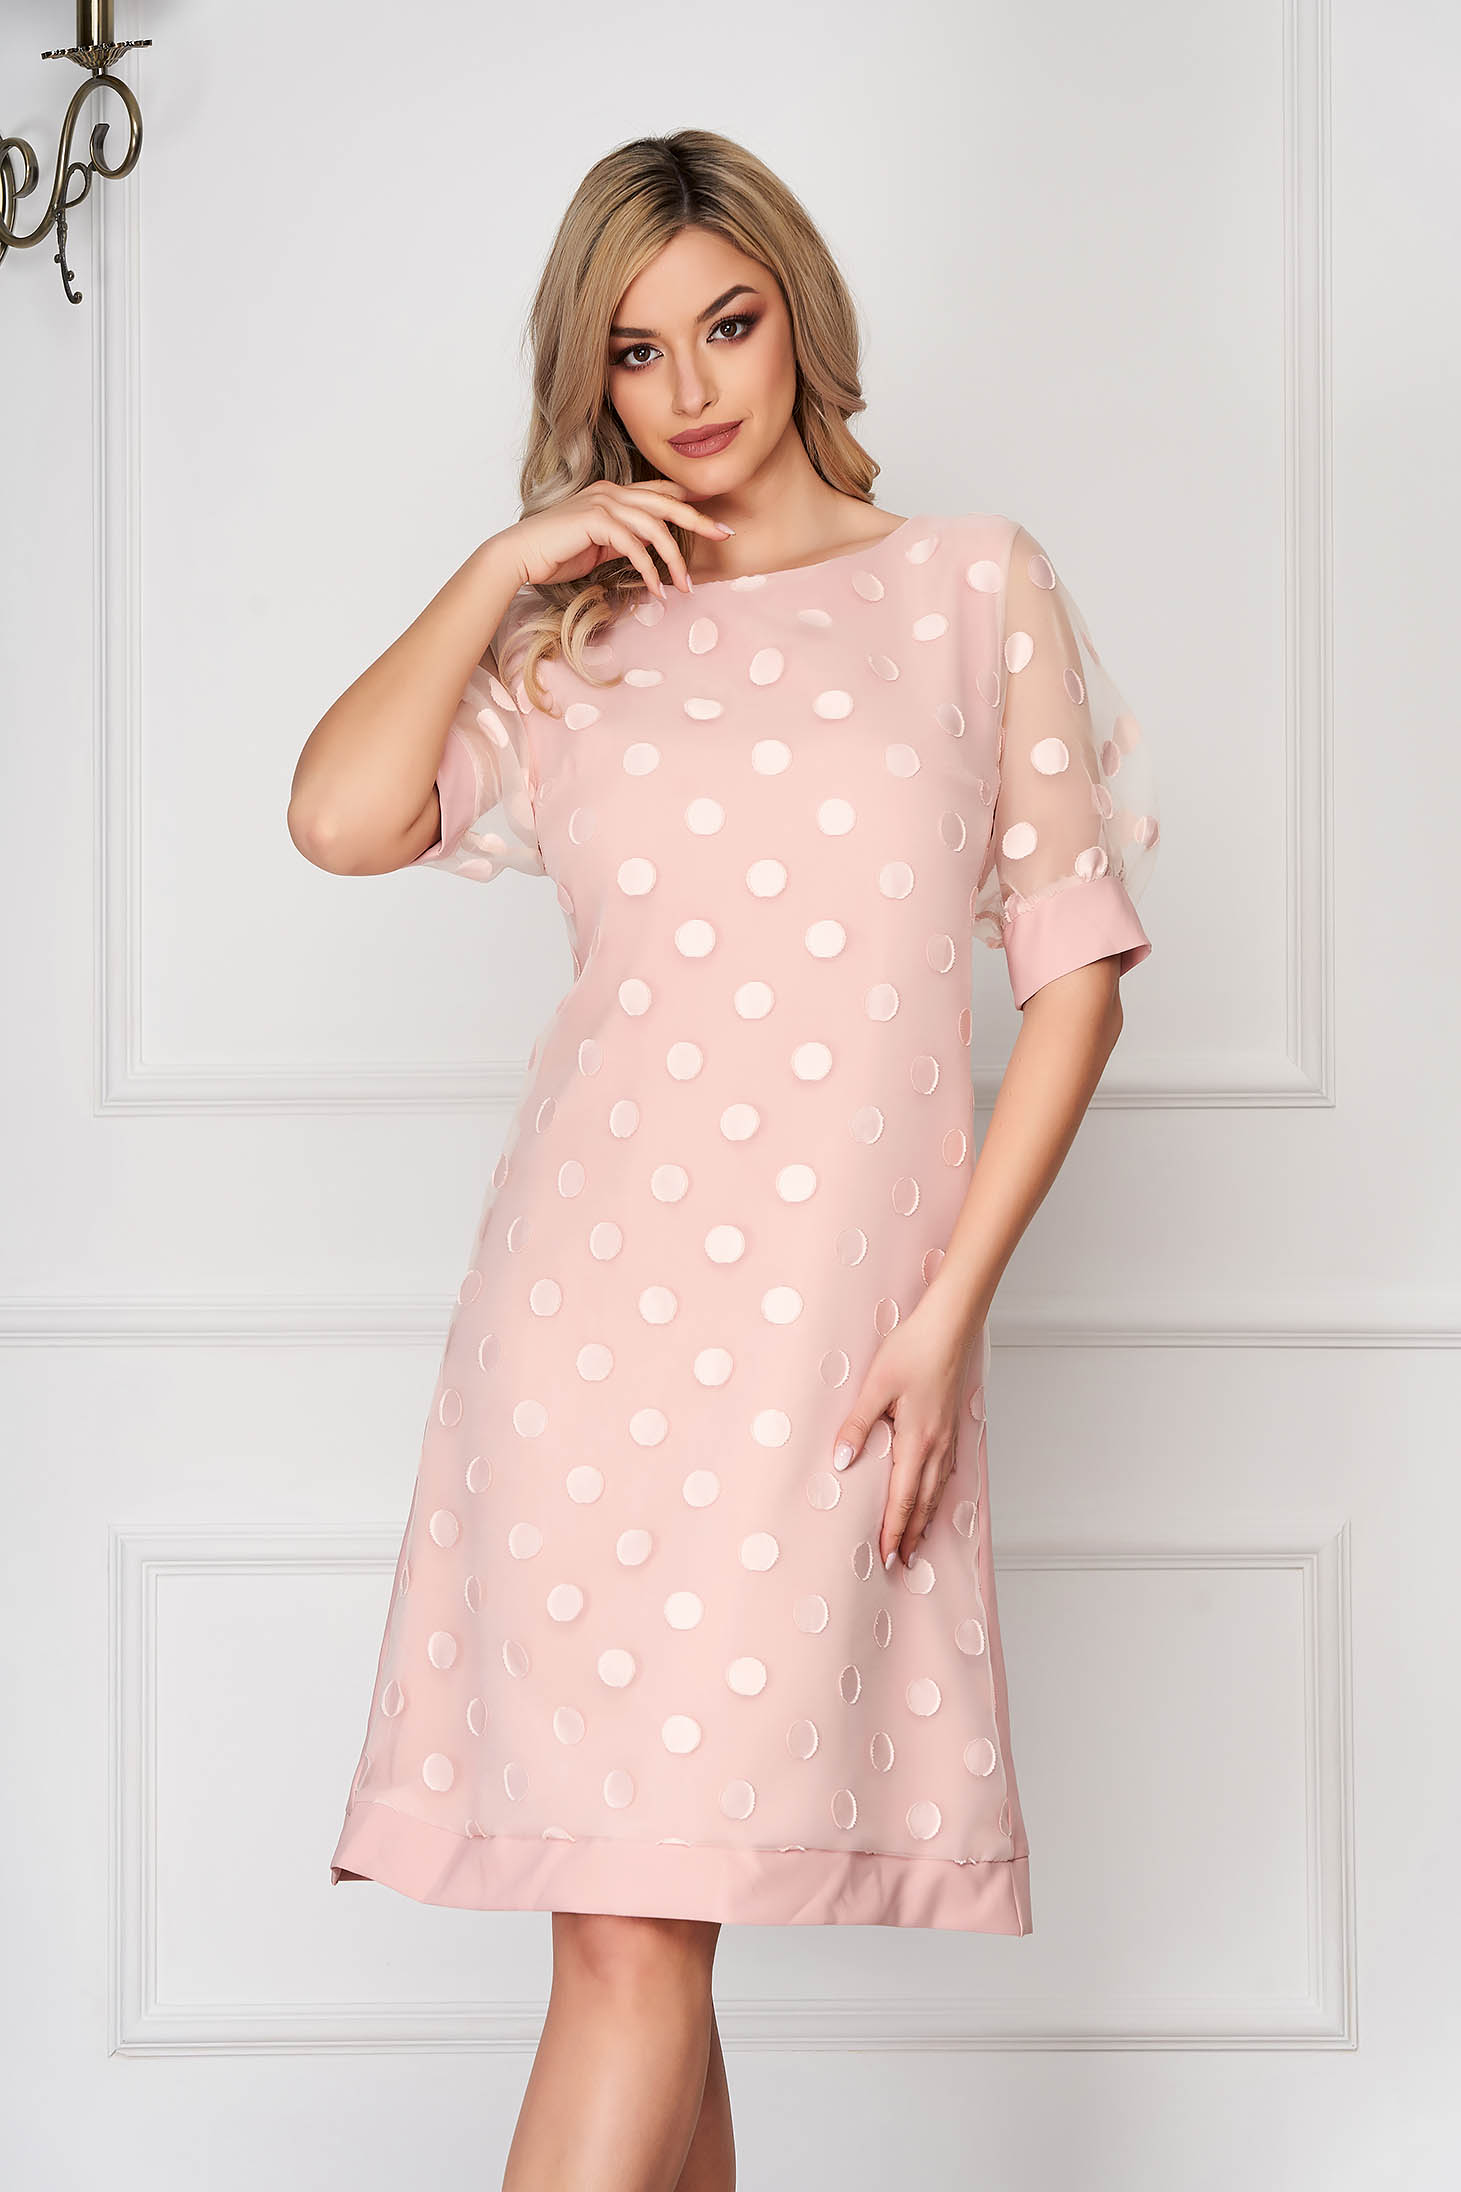 Lightpink dress midi elegant a-line with veil sleeves accessorized with chain